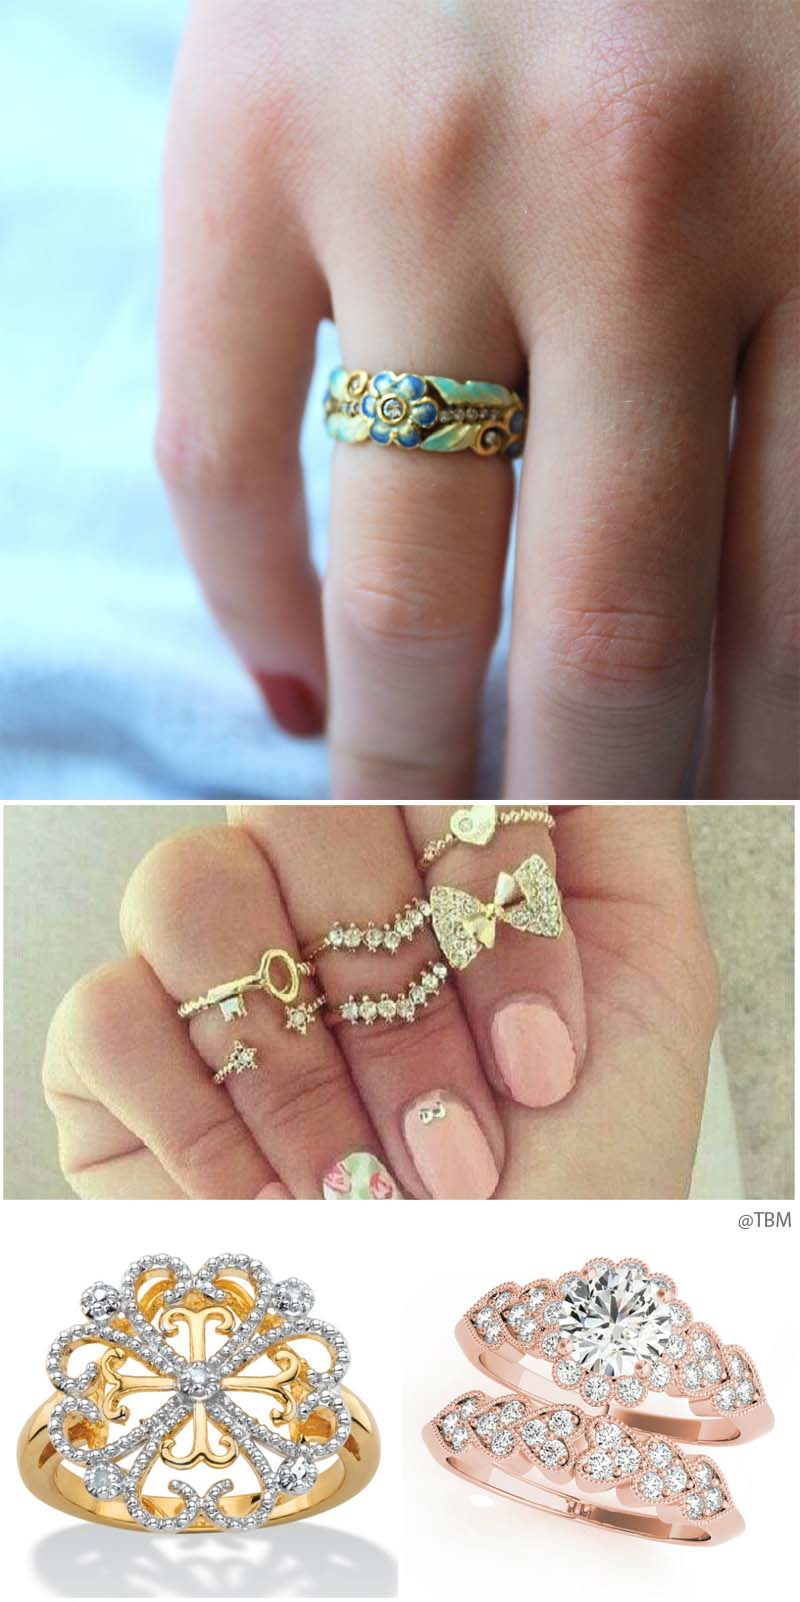 ring-with-floral-accents